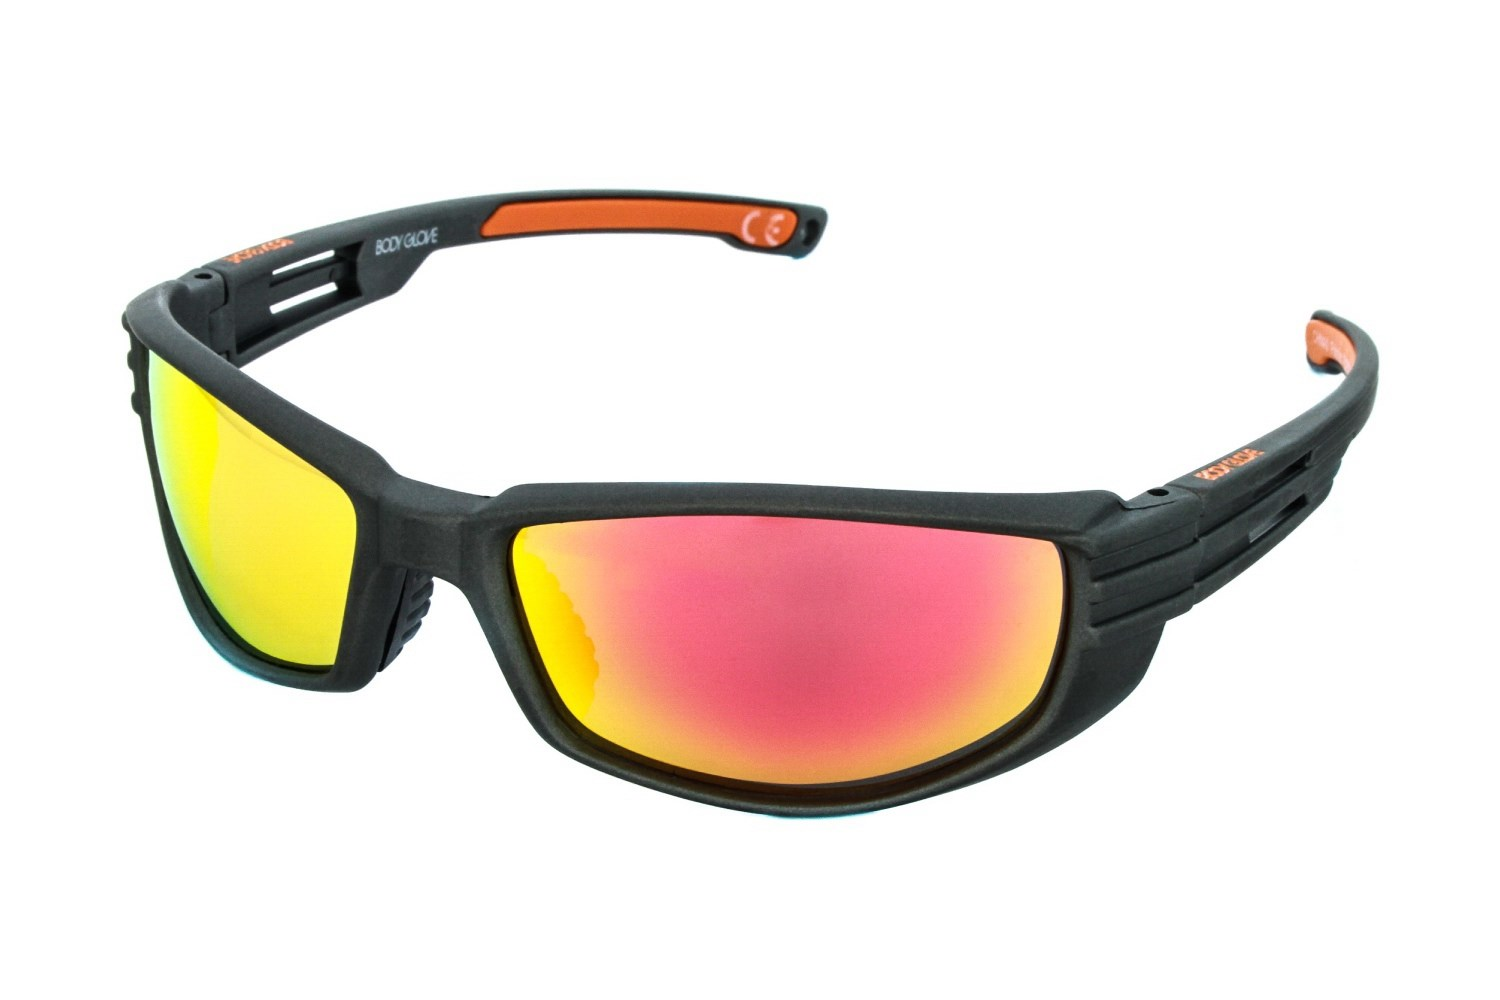 3b02e753a9f Sunglasses - Body Glove Eyewear glasses and contact lenses superstore